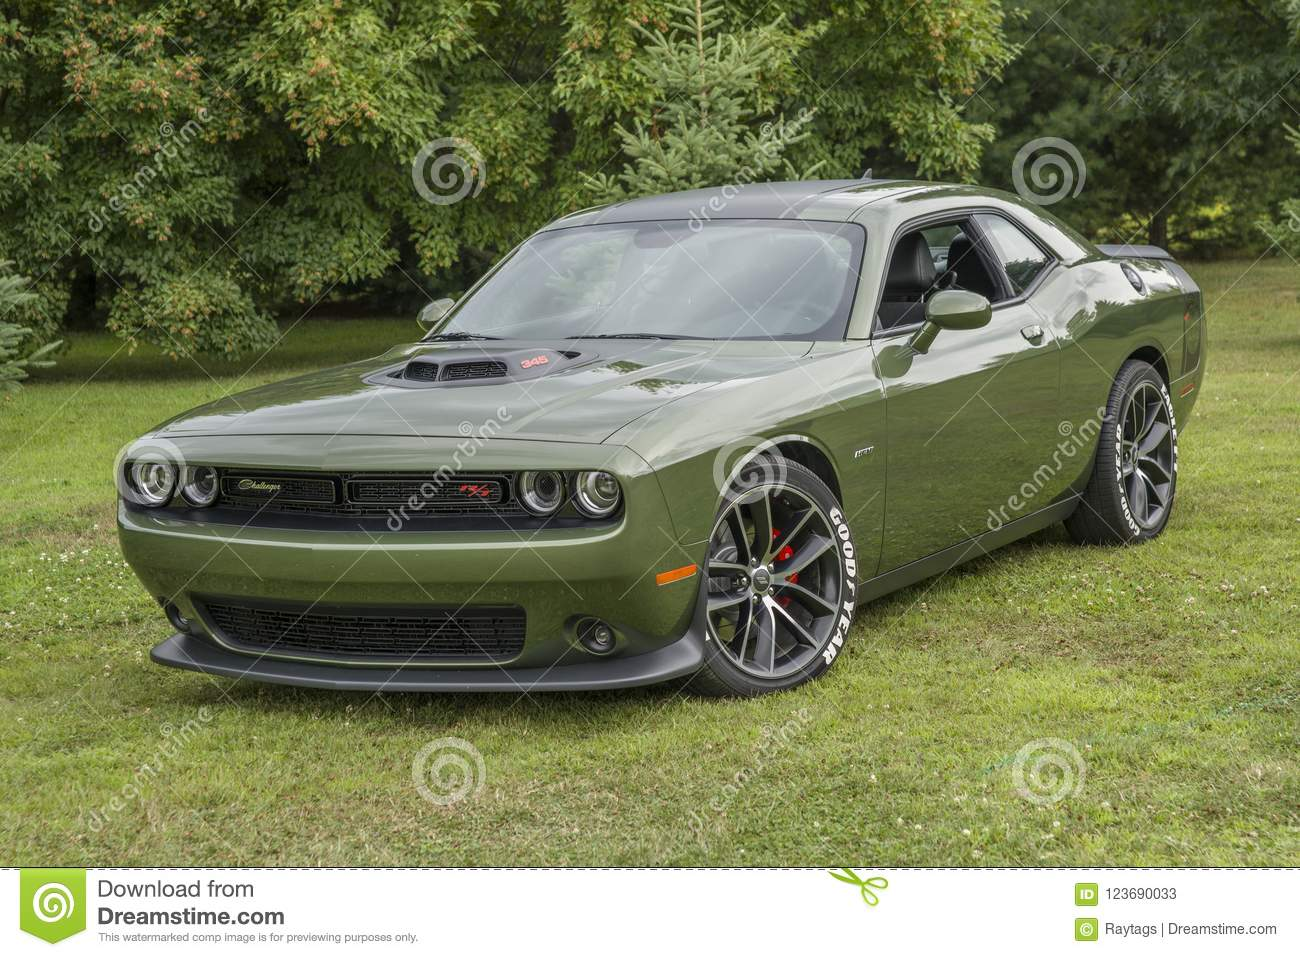 Green Dodge Challenger Photos Free Royalty Free Stock Photos From Dreamstime